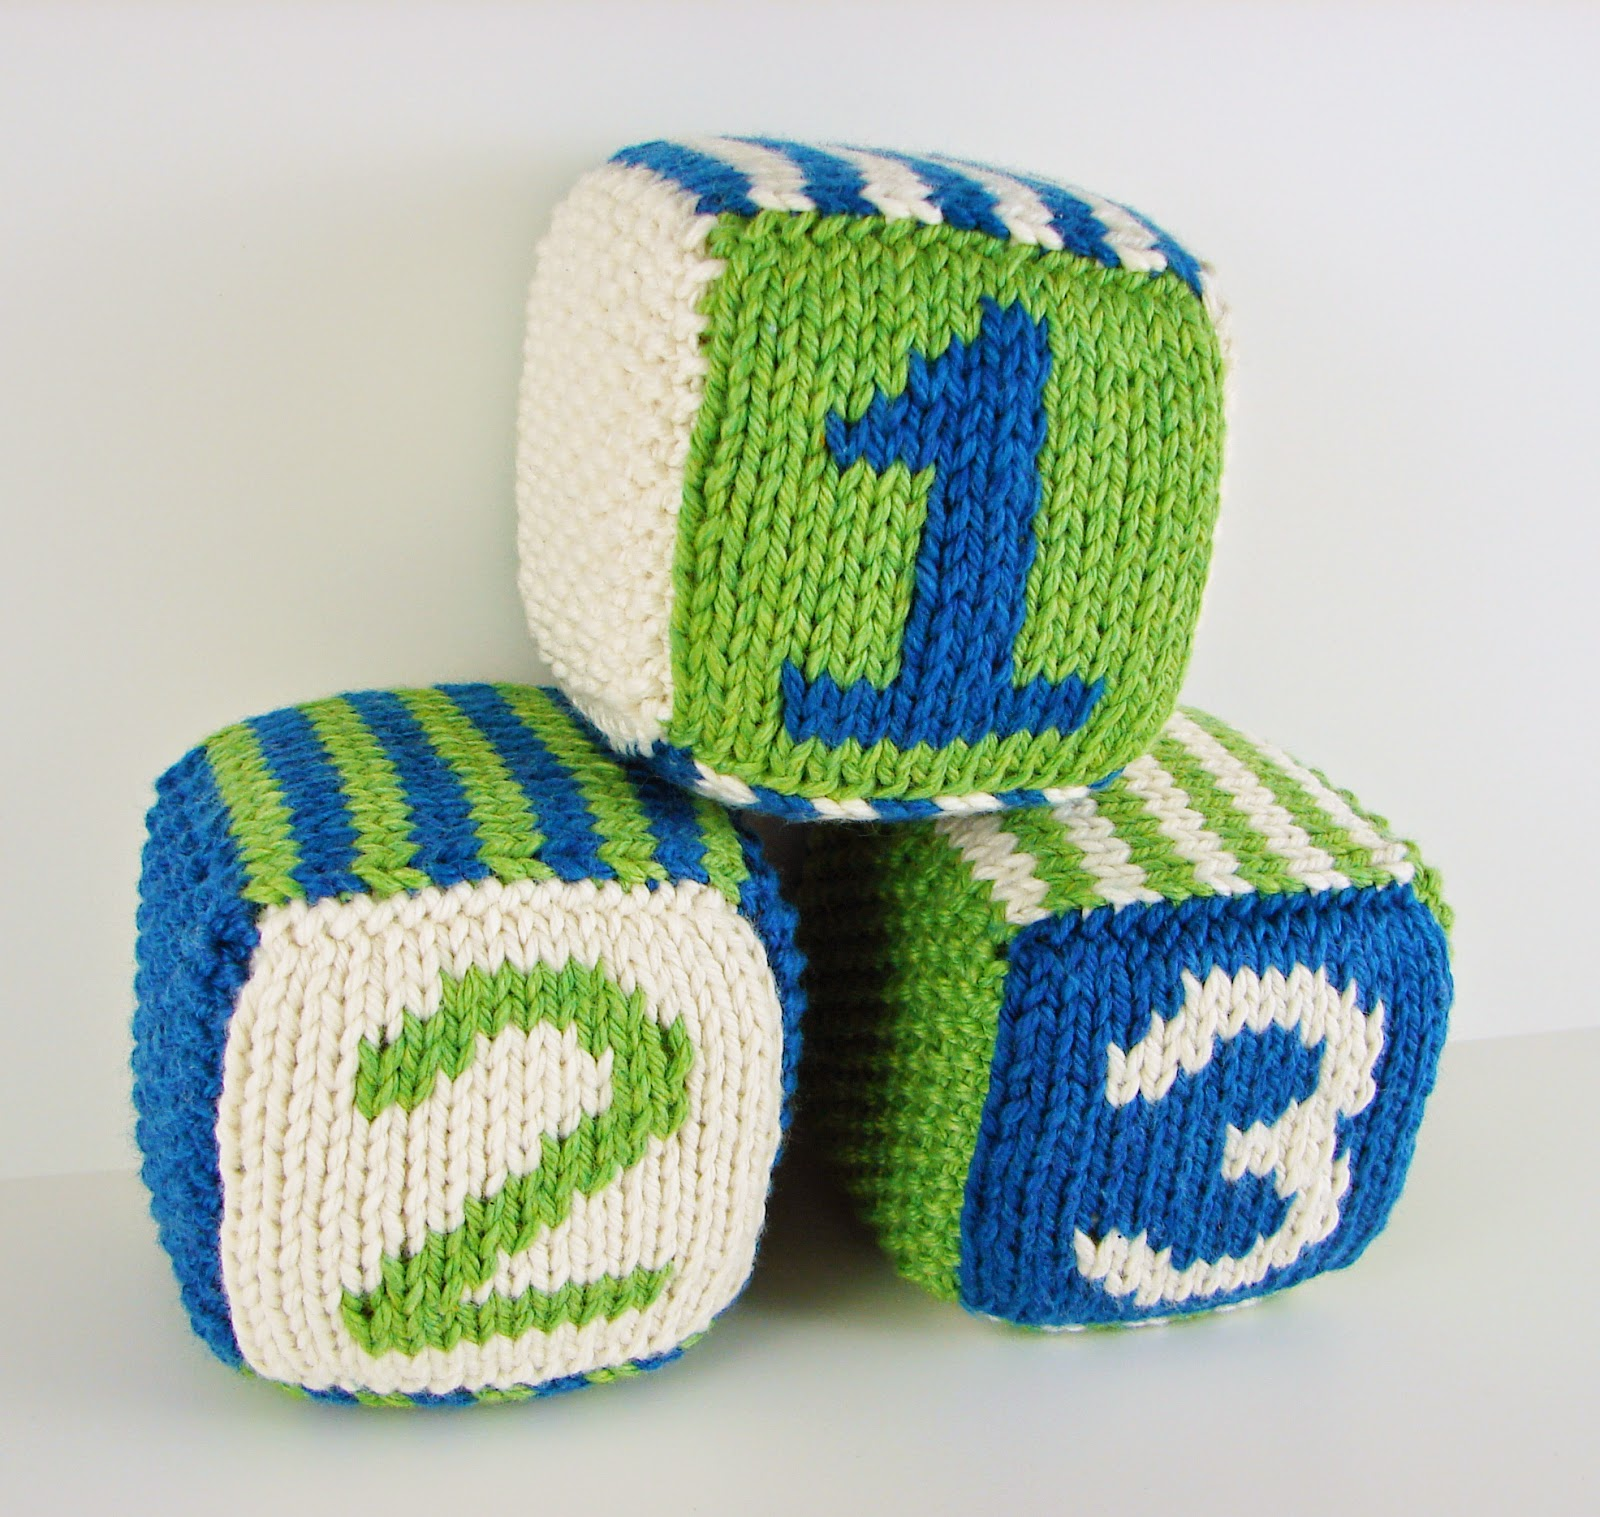 knit, blocks, foam, toys, hand knit, letter, number, striped, white, green, blue